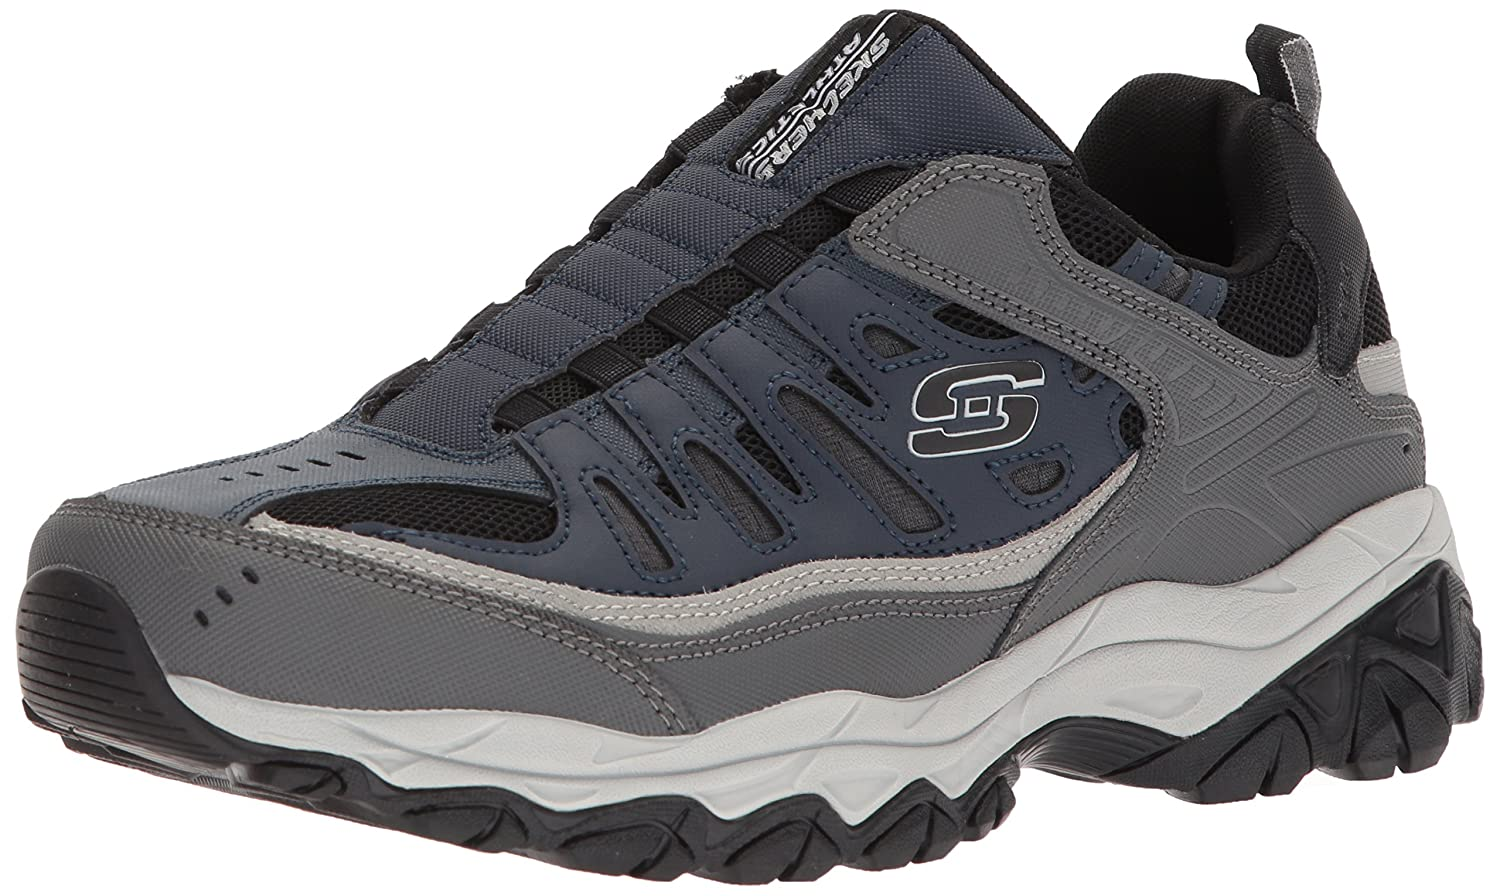 Skechers Men's Afterburn M. Fit Wonted Loafer 9 D(M) US|Navy/Gray